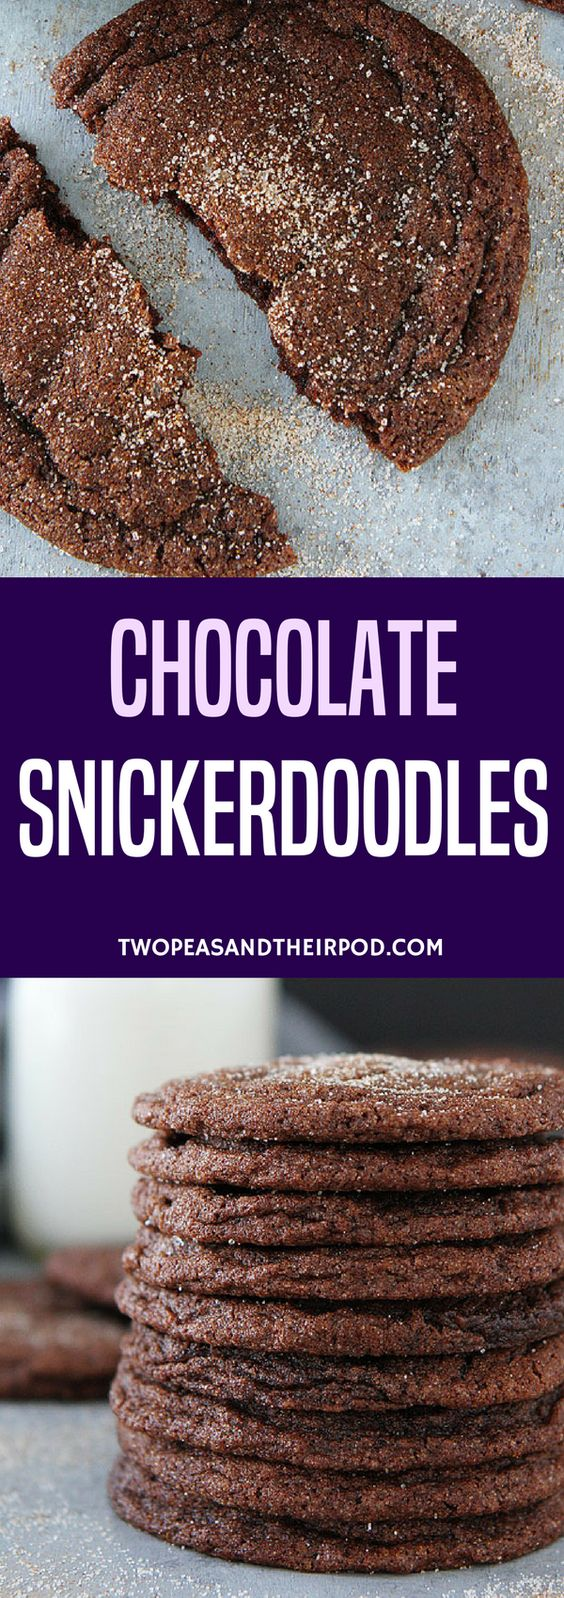 Chocolate Snickerdoodles are soft, chewy, and will remind you of classic snickerdoodles but with chocolate! Chocolate lovers will LOVE these cookies! #cookies #snickerdoodles #baking #chocolate